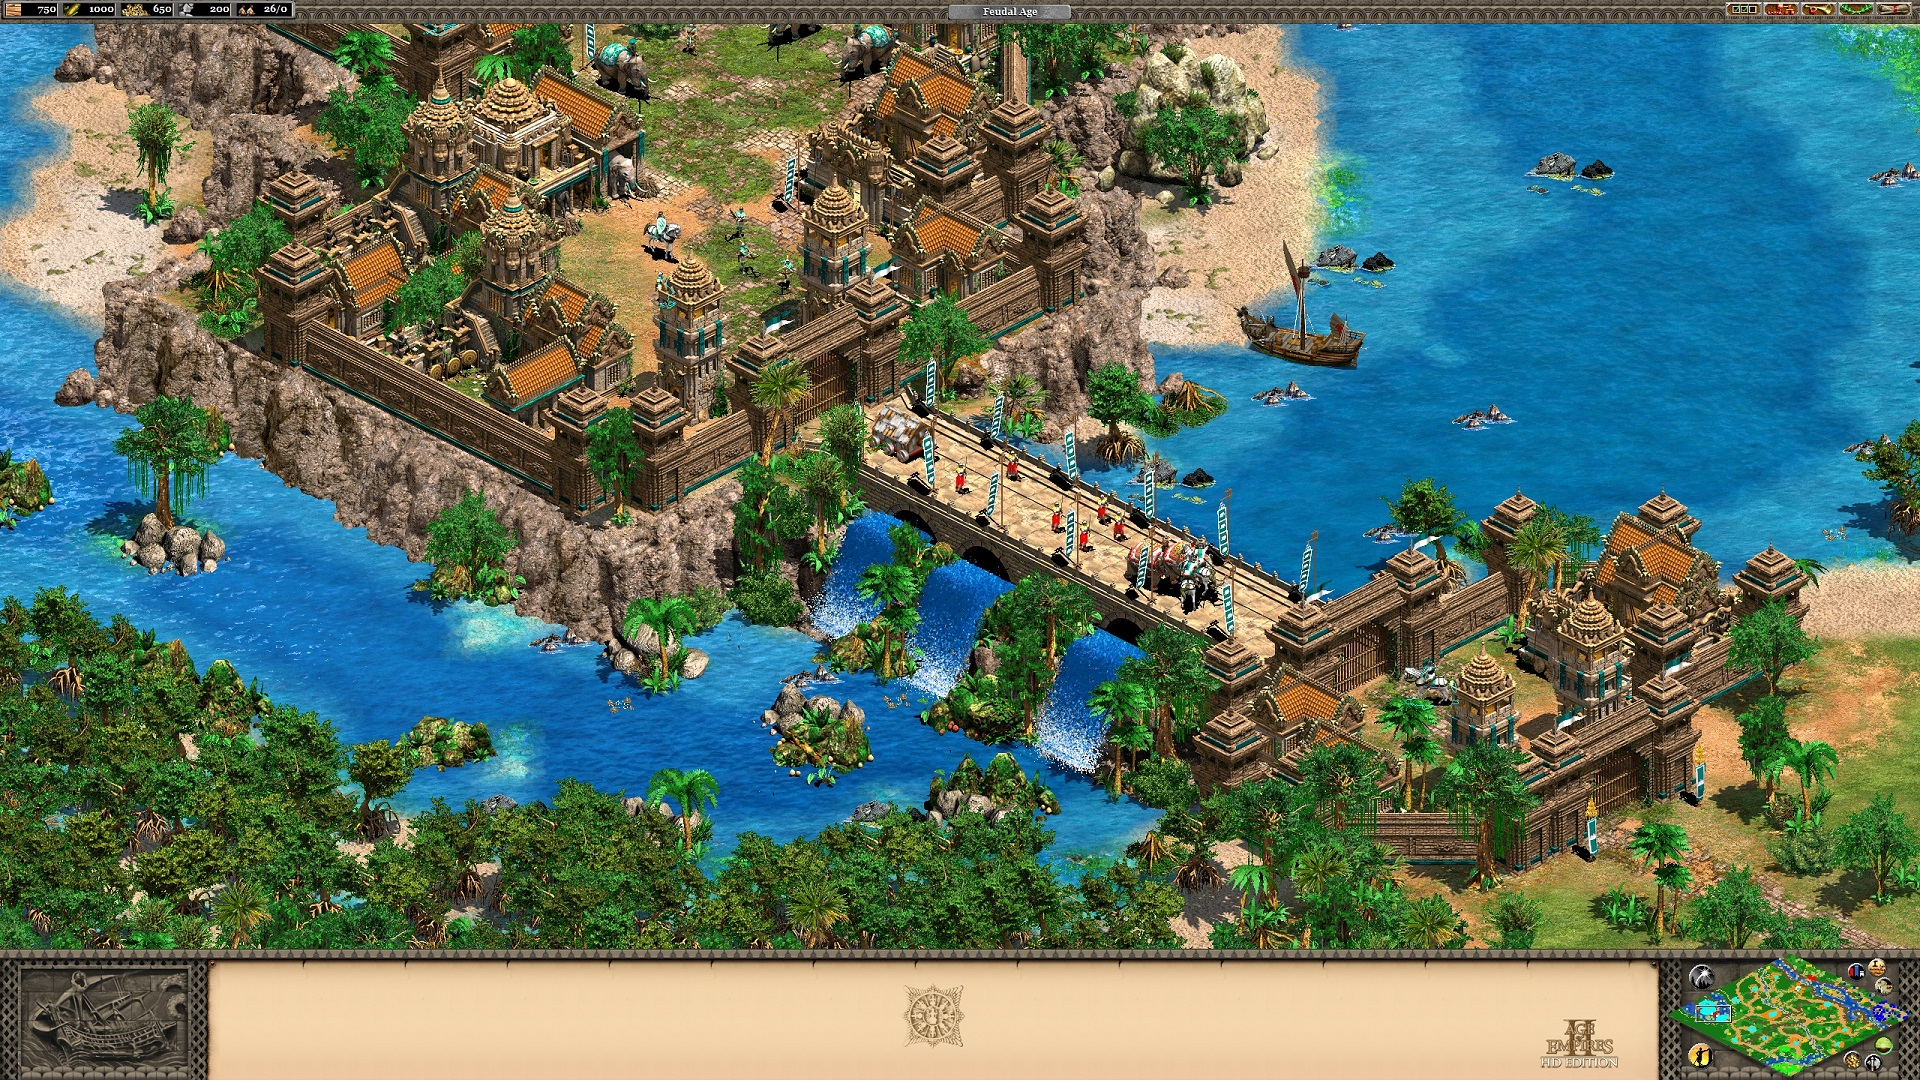 Age of Empires II (2013): Rise of the Rajas